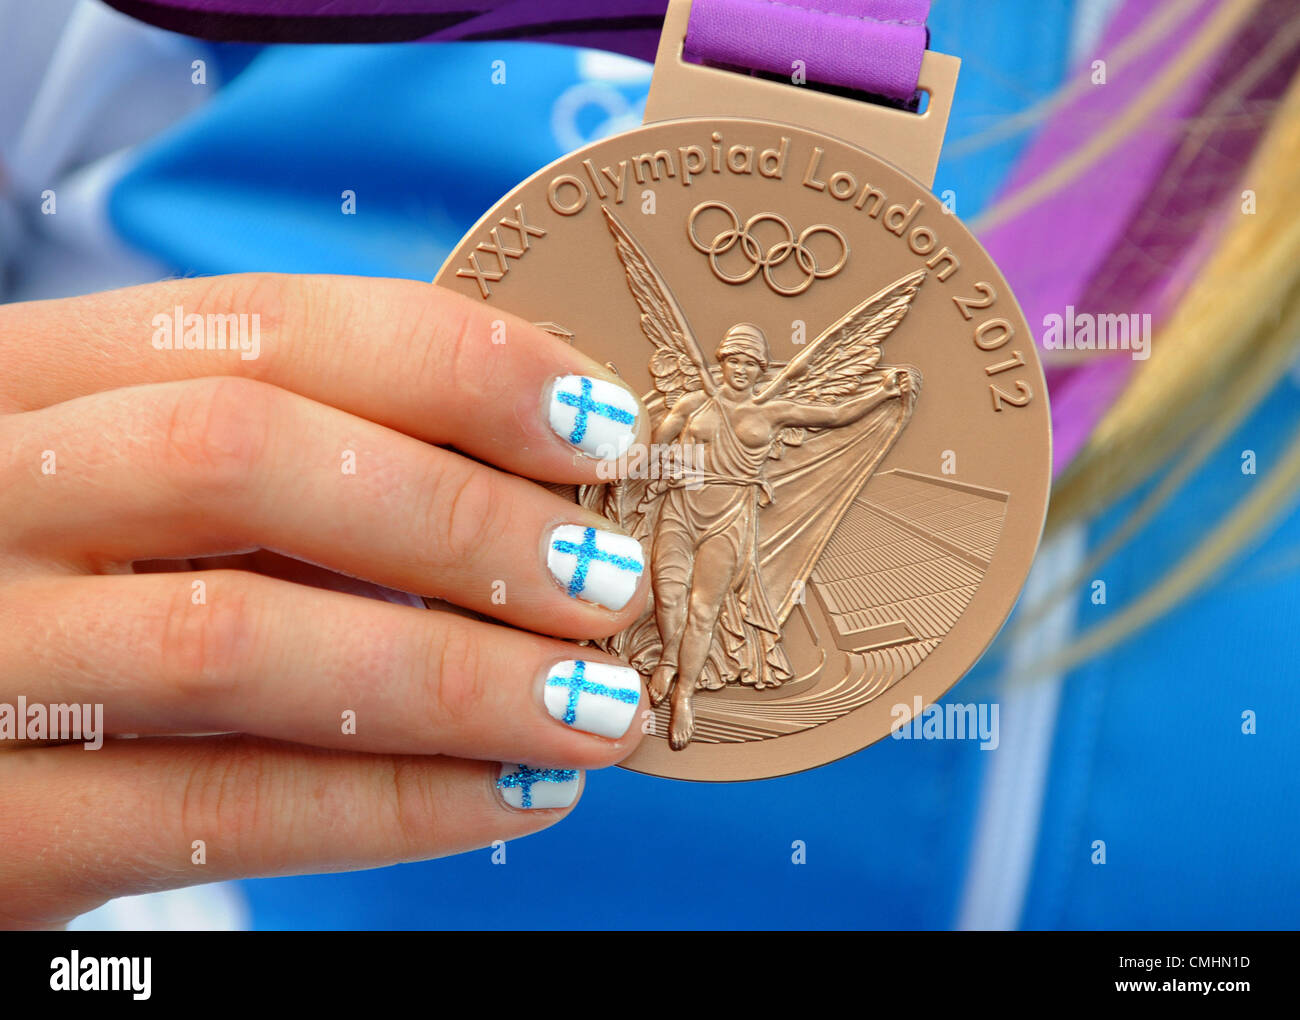 London 2012 Olympics, Sailing at the Weymouth & Portland Venue, Dorset, Britain, UK.  August 11th, 2012 Olympic - Stock Image